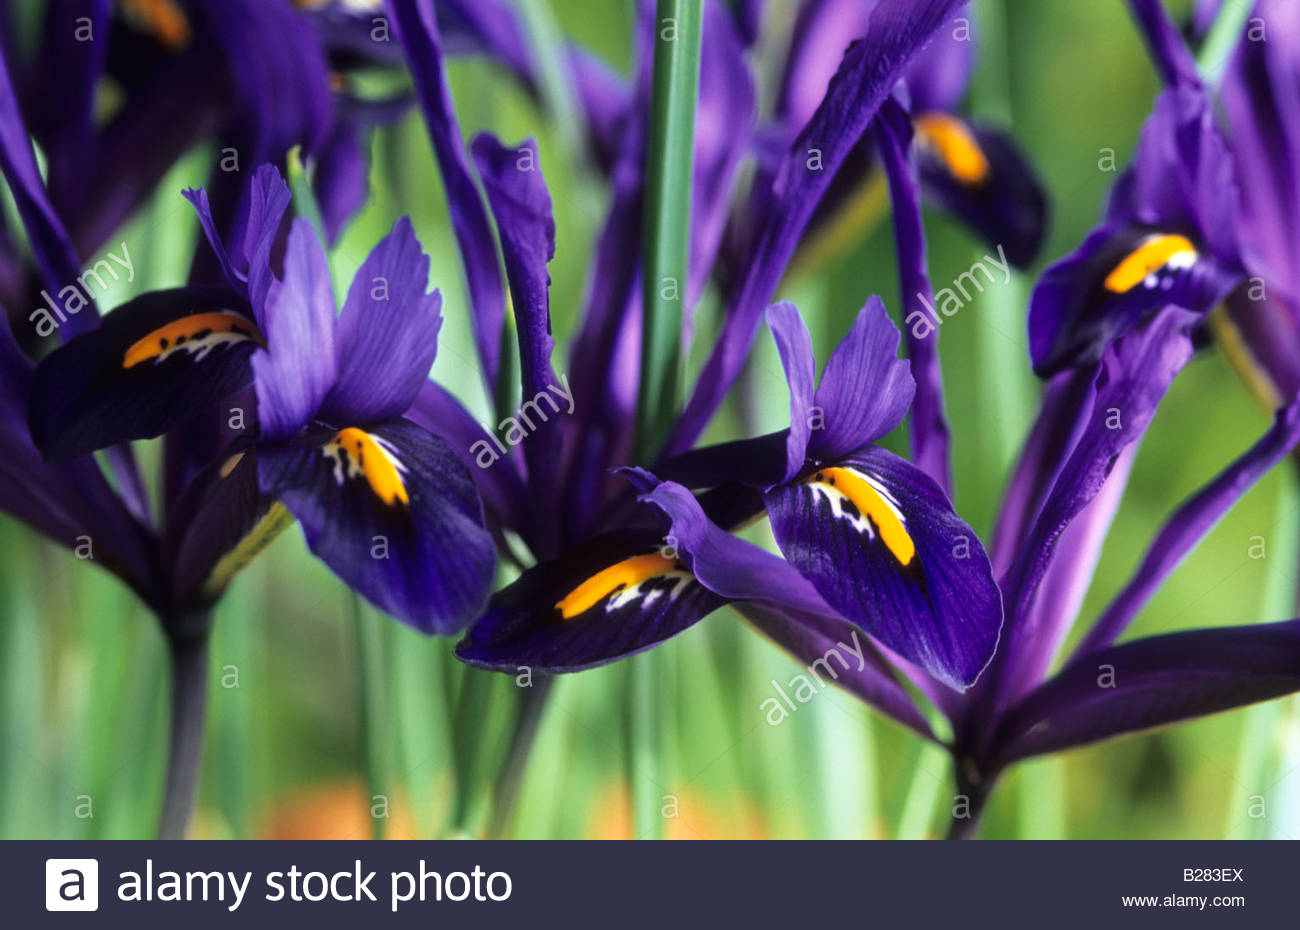 Dwarf Iris Reticulata Pixie Spring Flower Bulb Purple February